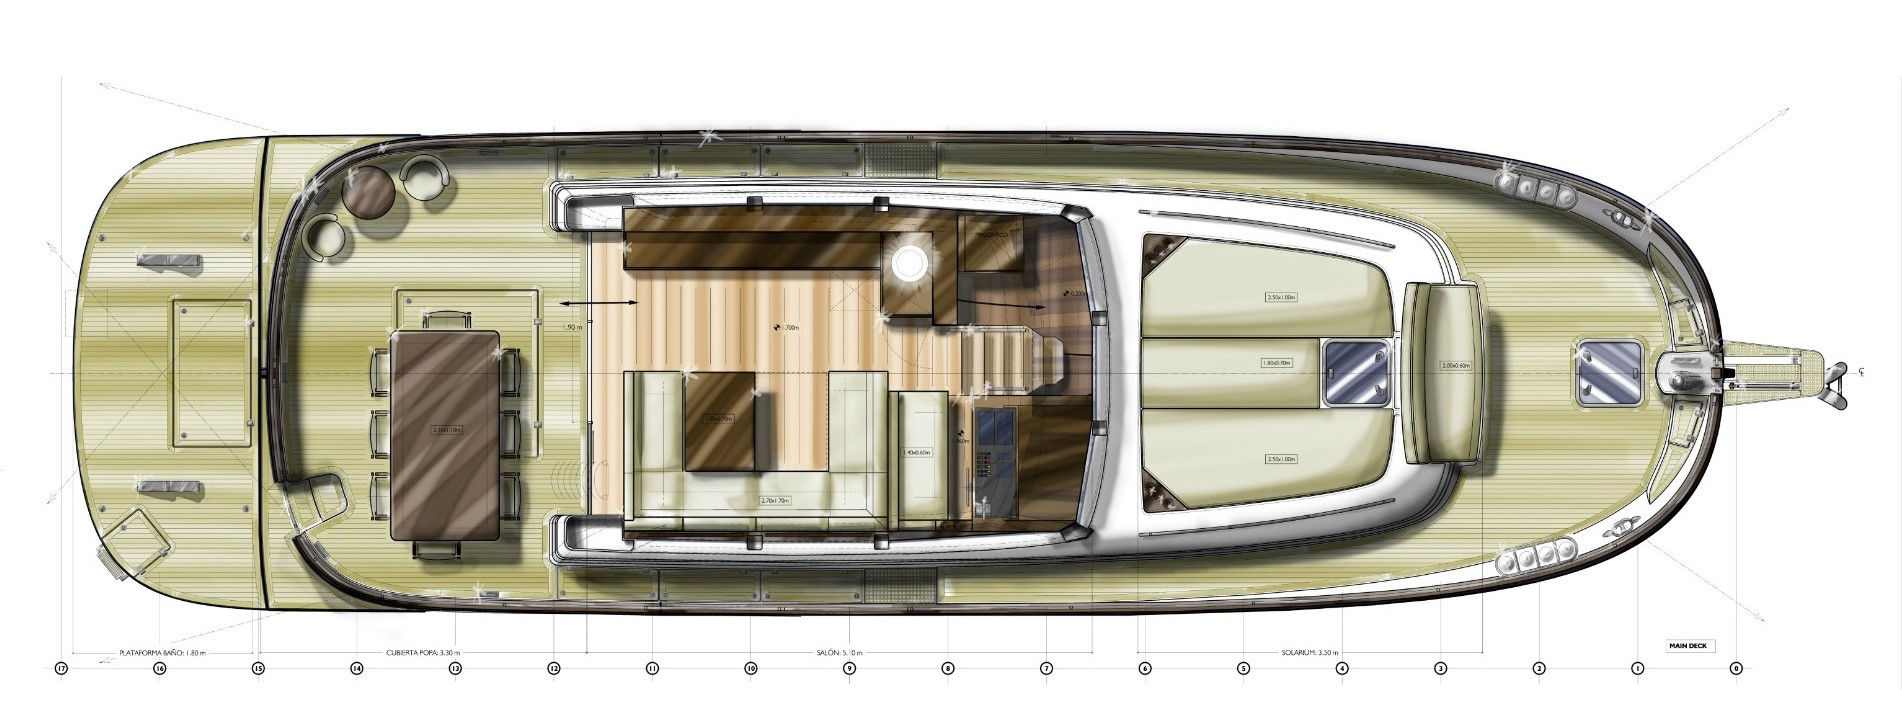 minorca islander 54 flybridge main deck layout 2